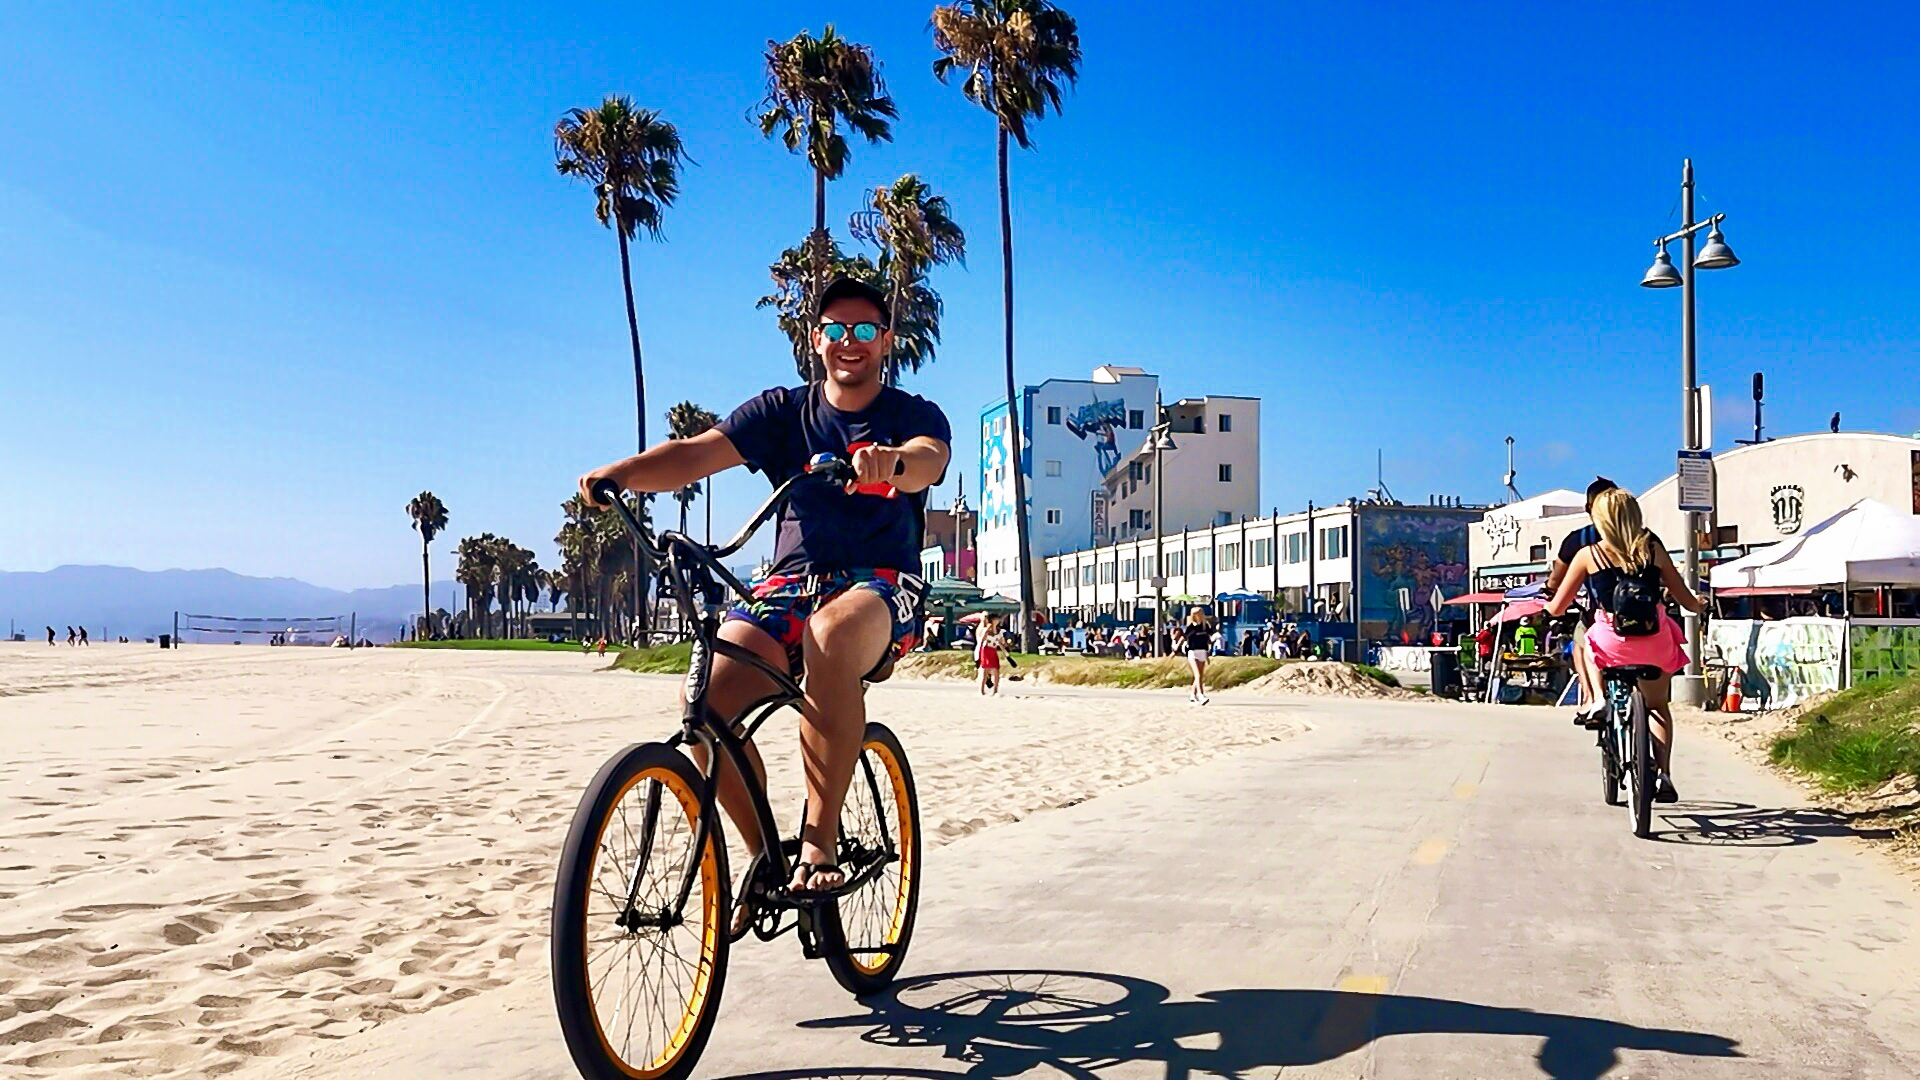 Venice Beach is a famous beach in Los Angeles, California, and you should not miss this lovely place.